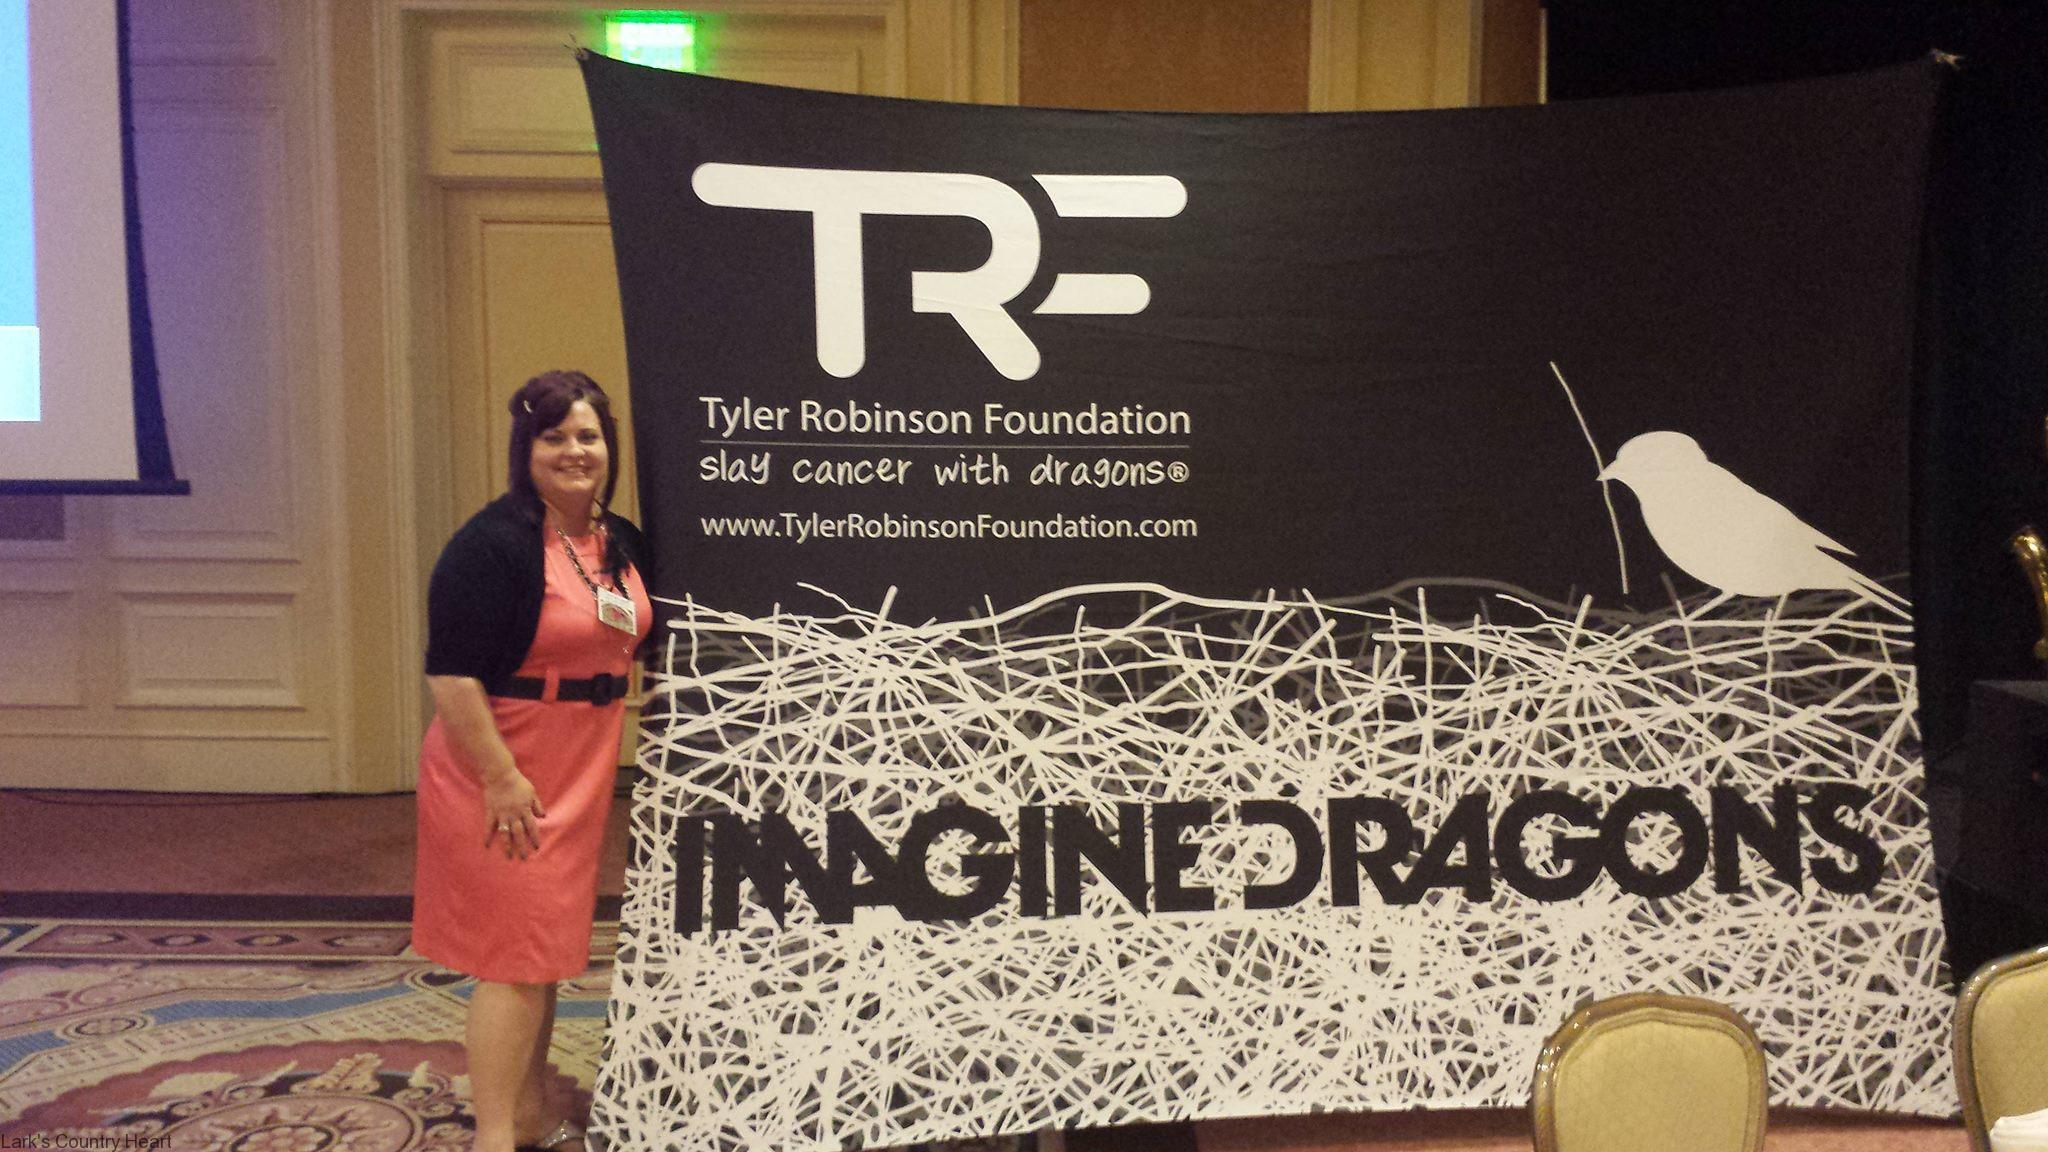 Pay it Forward to the Tyler Robinson Foundation